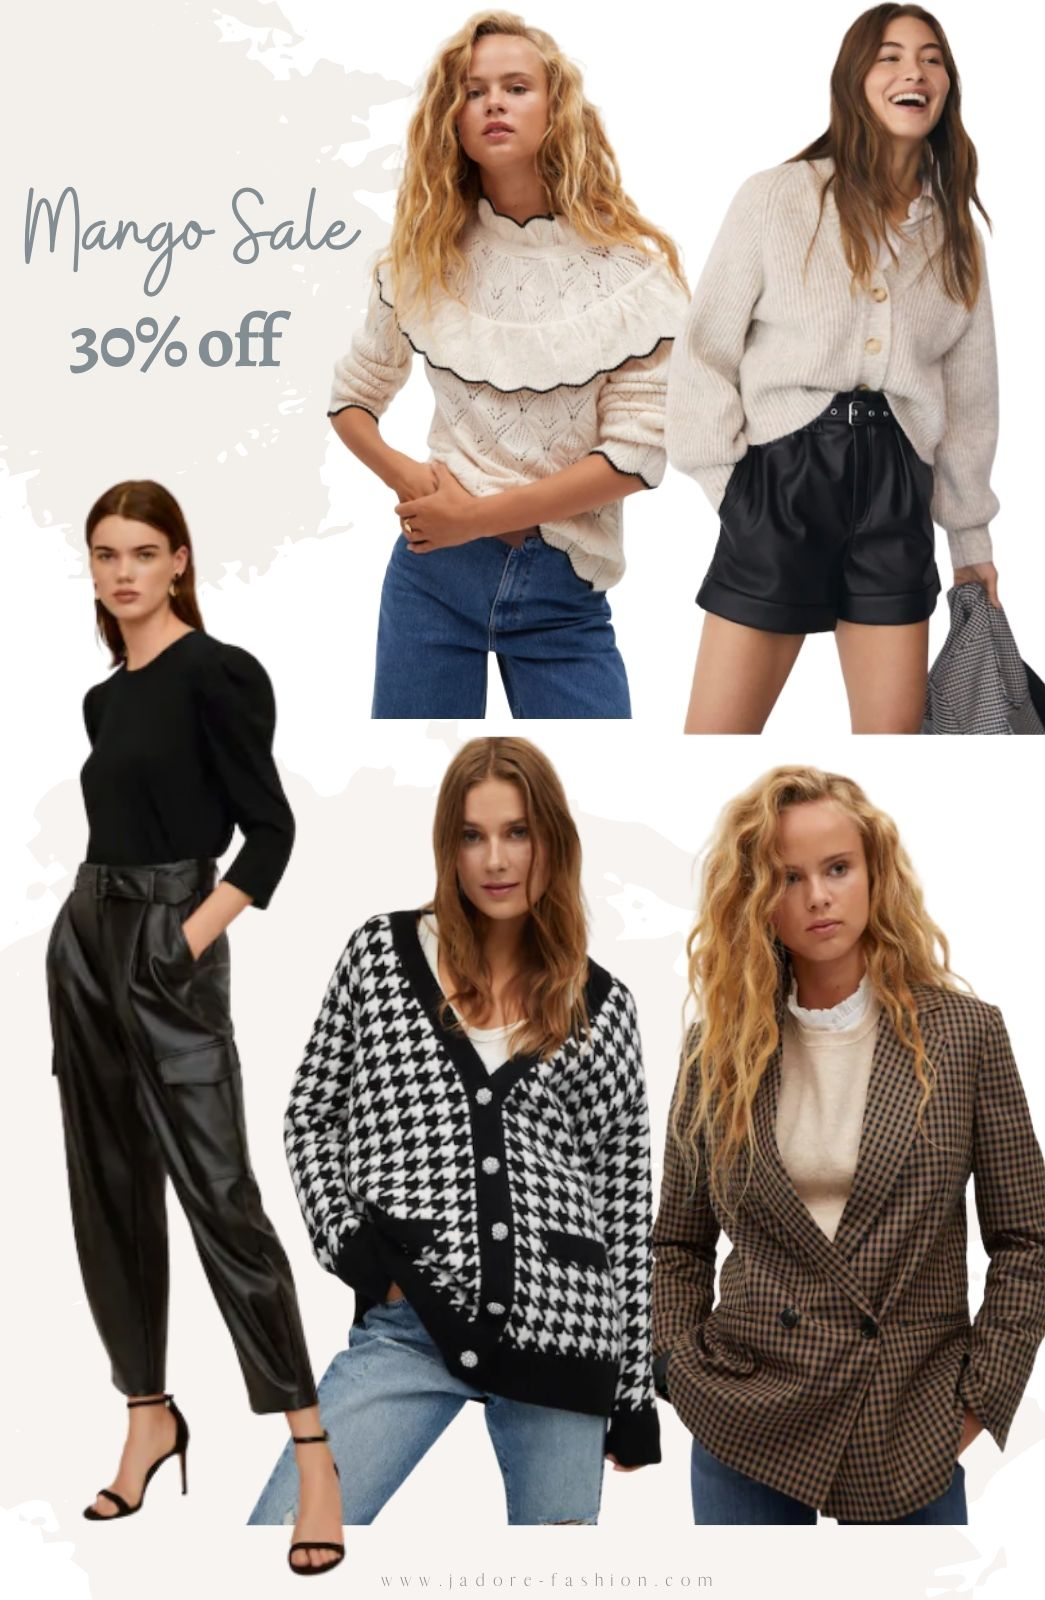 stella-adewunmi-of-jadore-fashion-blog-shares-weekend-finds-and-deals-this-is-the-sale-to-shop-this-weekend